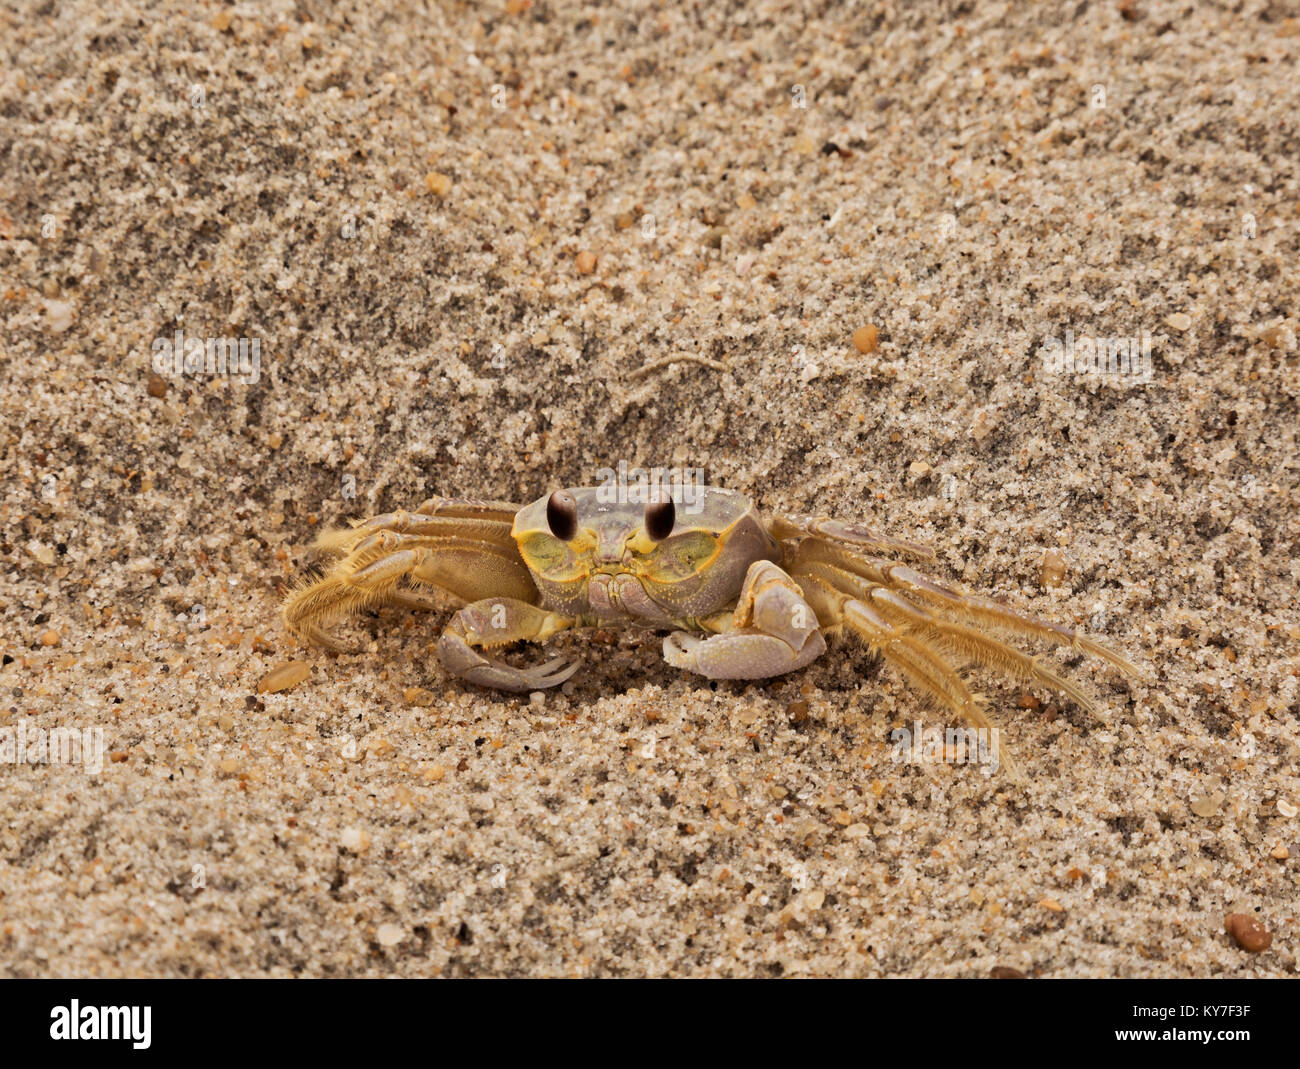 NC01272-00...NORTH CAROLINA - A ghost crab on an beach along the Atlantic Ocean on the Outer Banks. - Stock Image